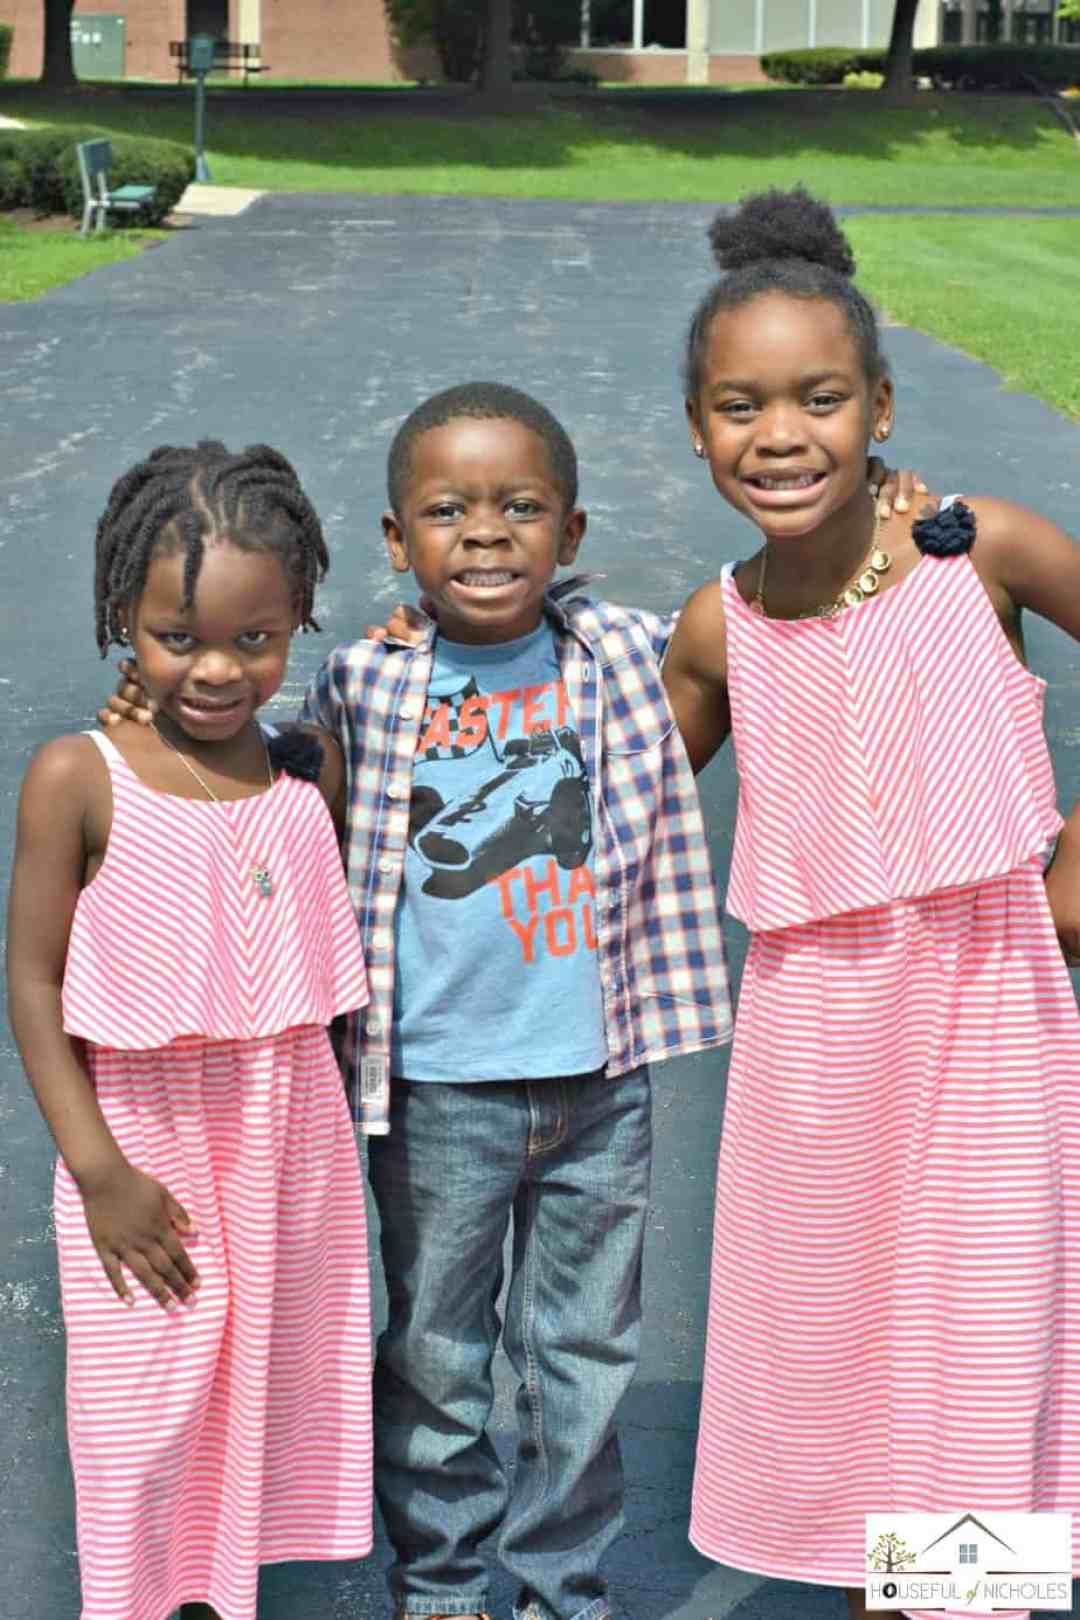 Back to School with OshKosh BGosh #BacktoBgosh